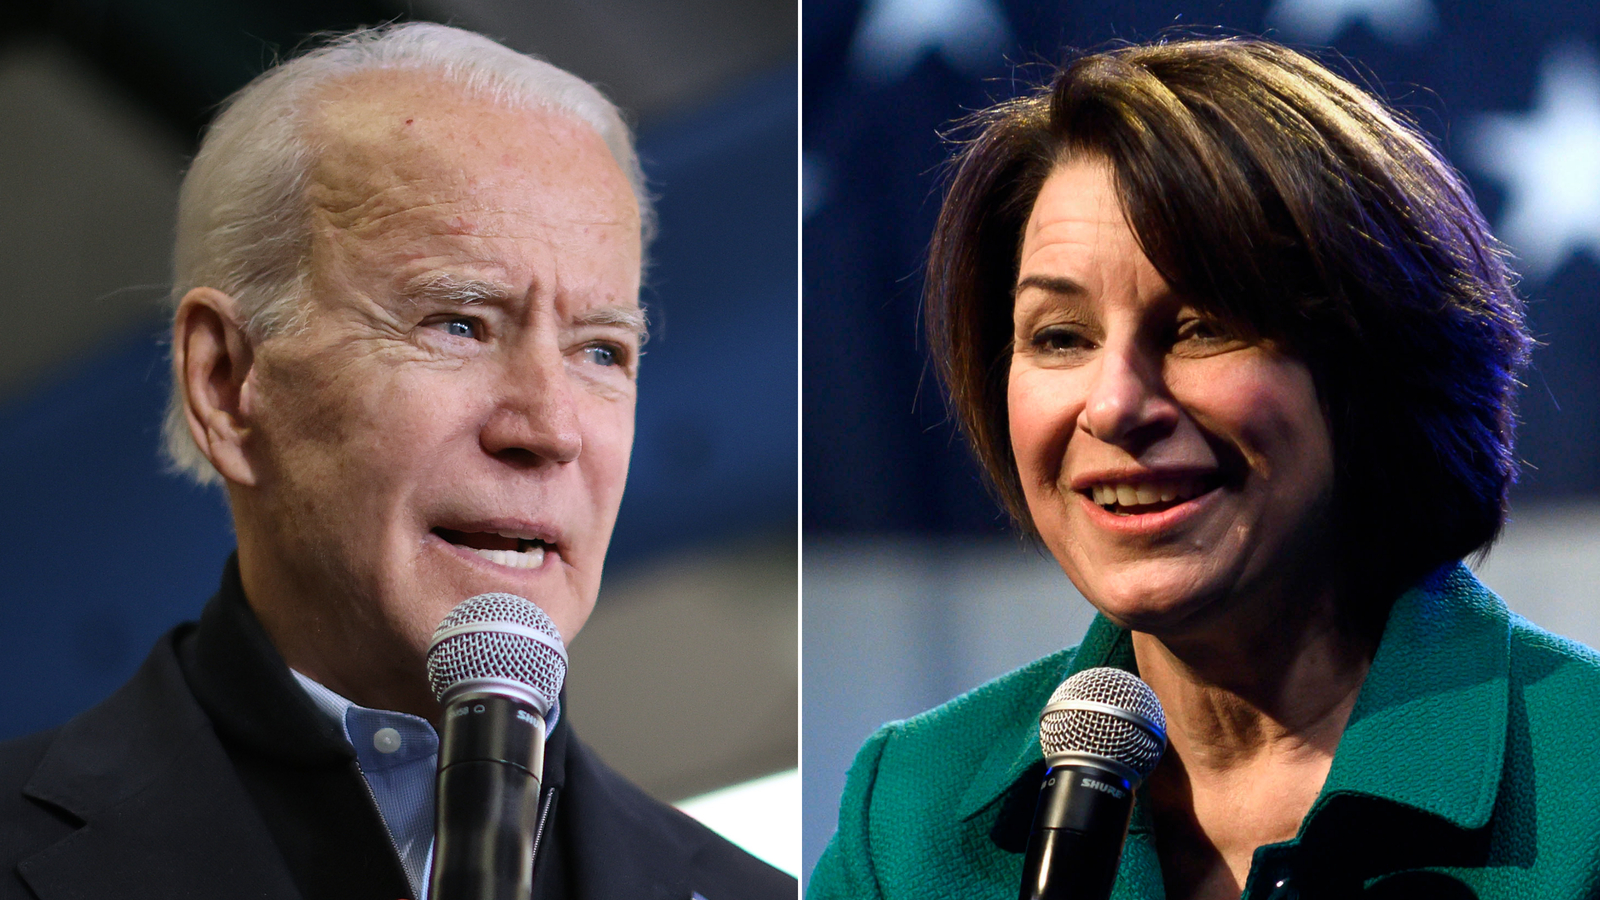 Klobuchar says she's not directing supporters to do anything after Biden aides float Iowa caucus alliance